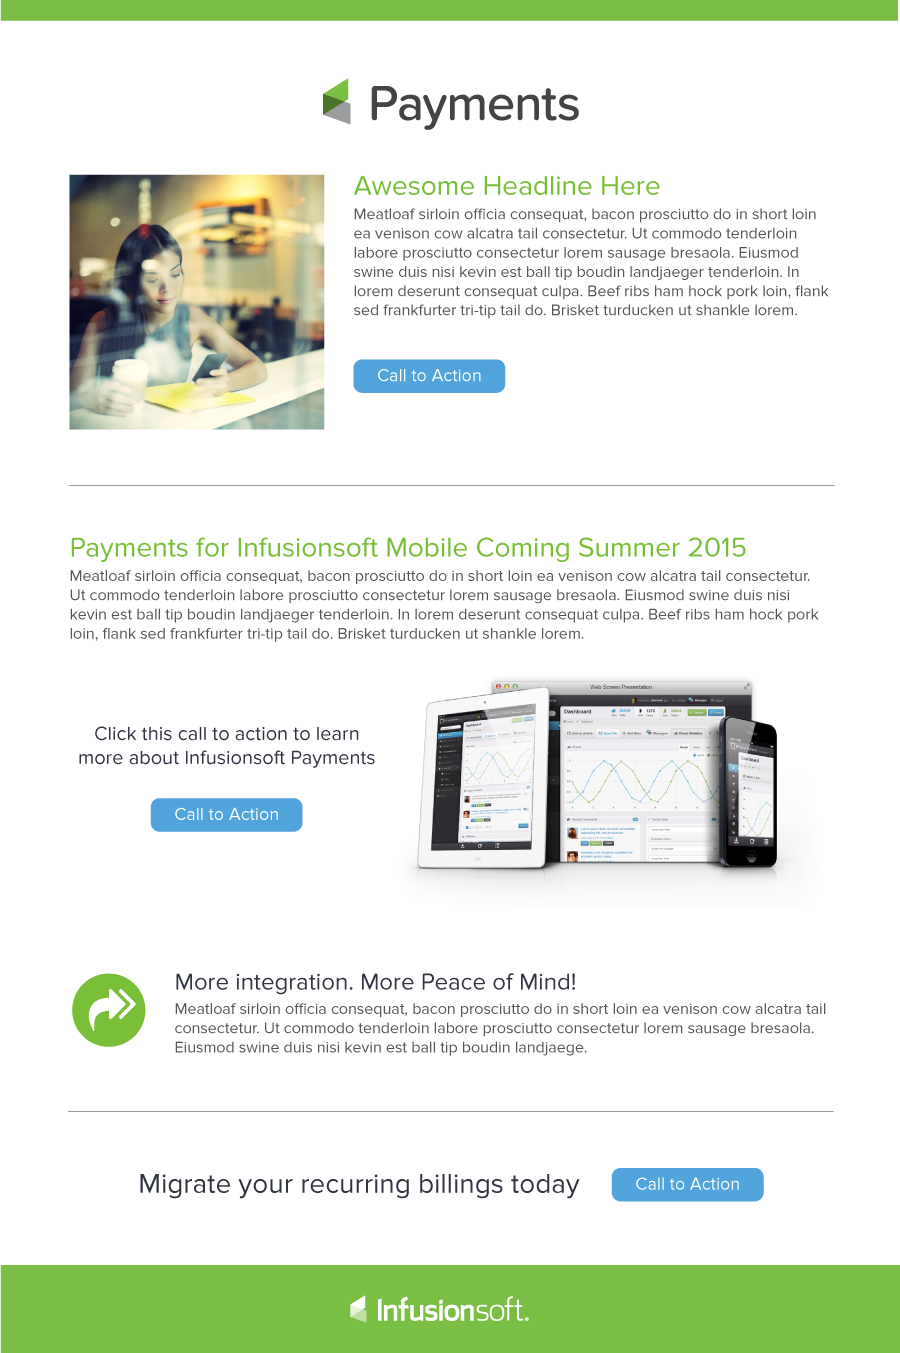 infusionsoft payments product nurture email 3 justin topliff